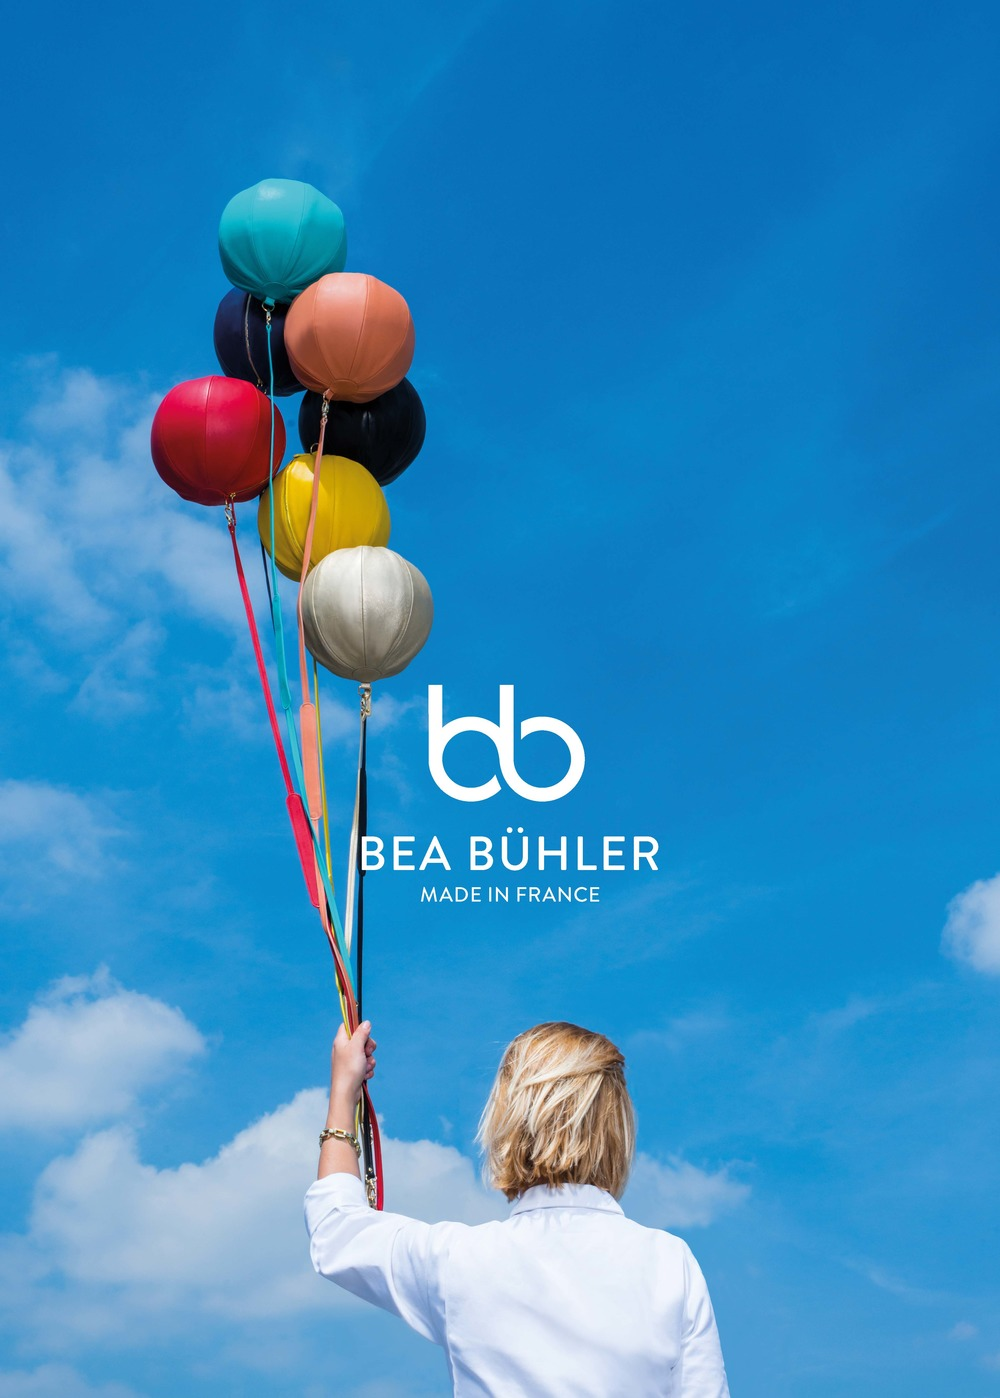 BEA BÜHLER BALLOON BAG 2.jpg